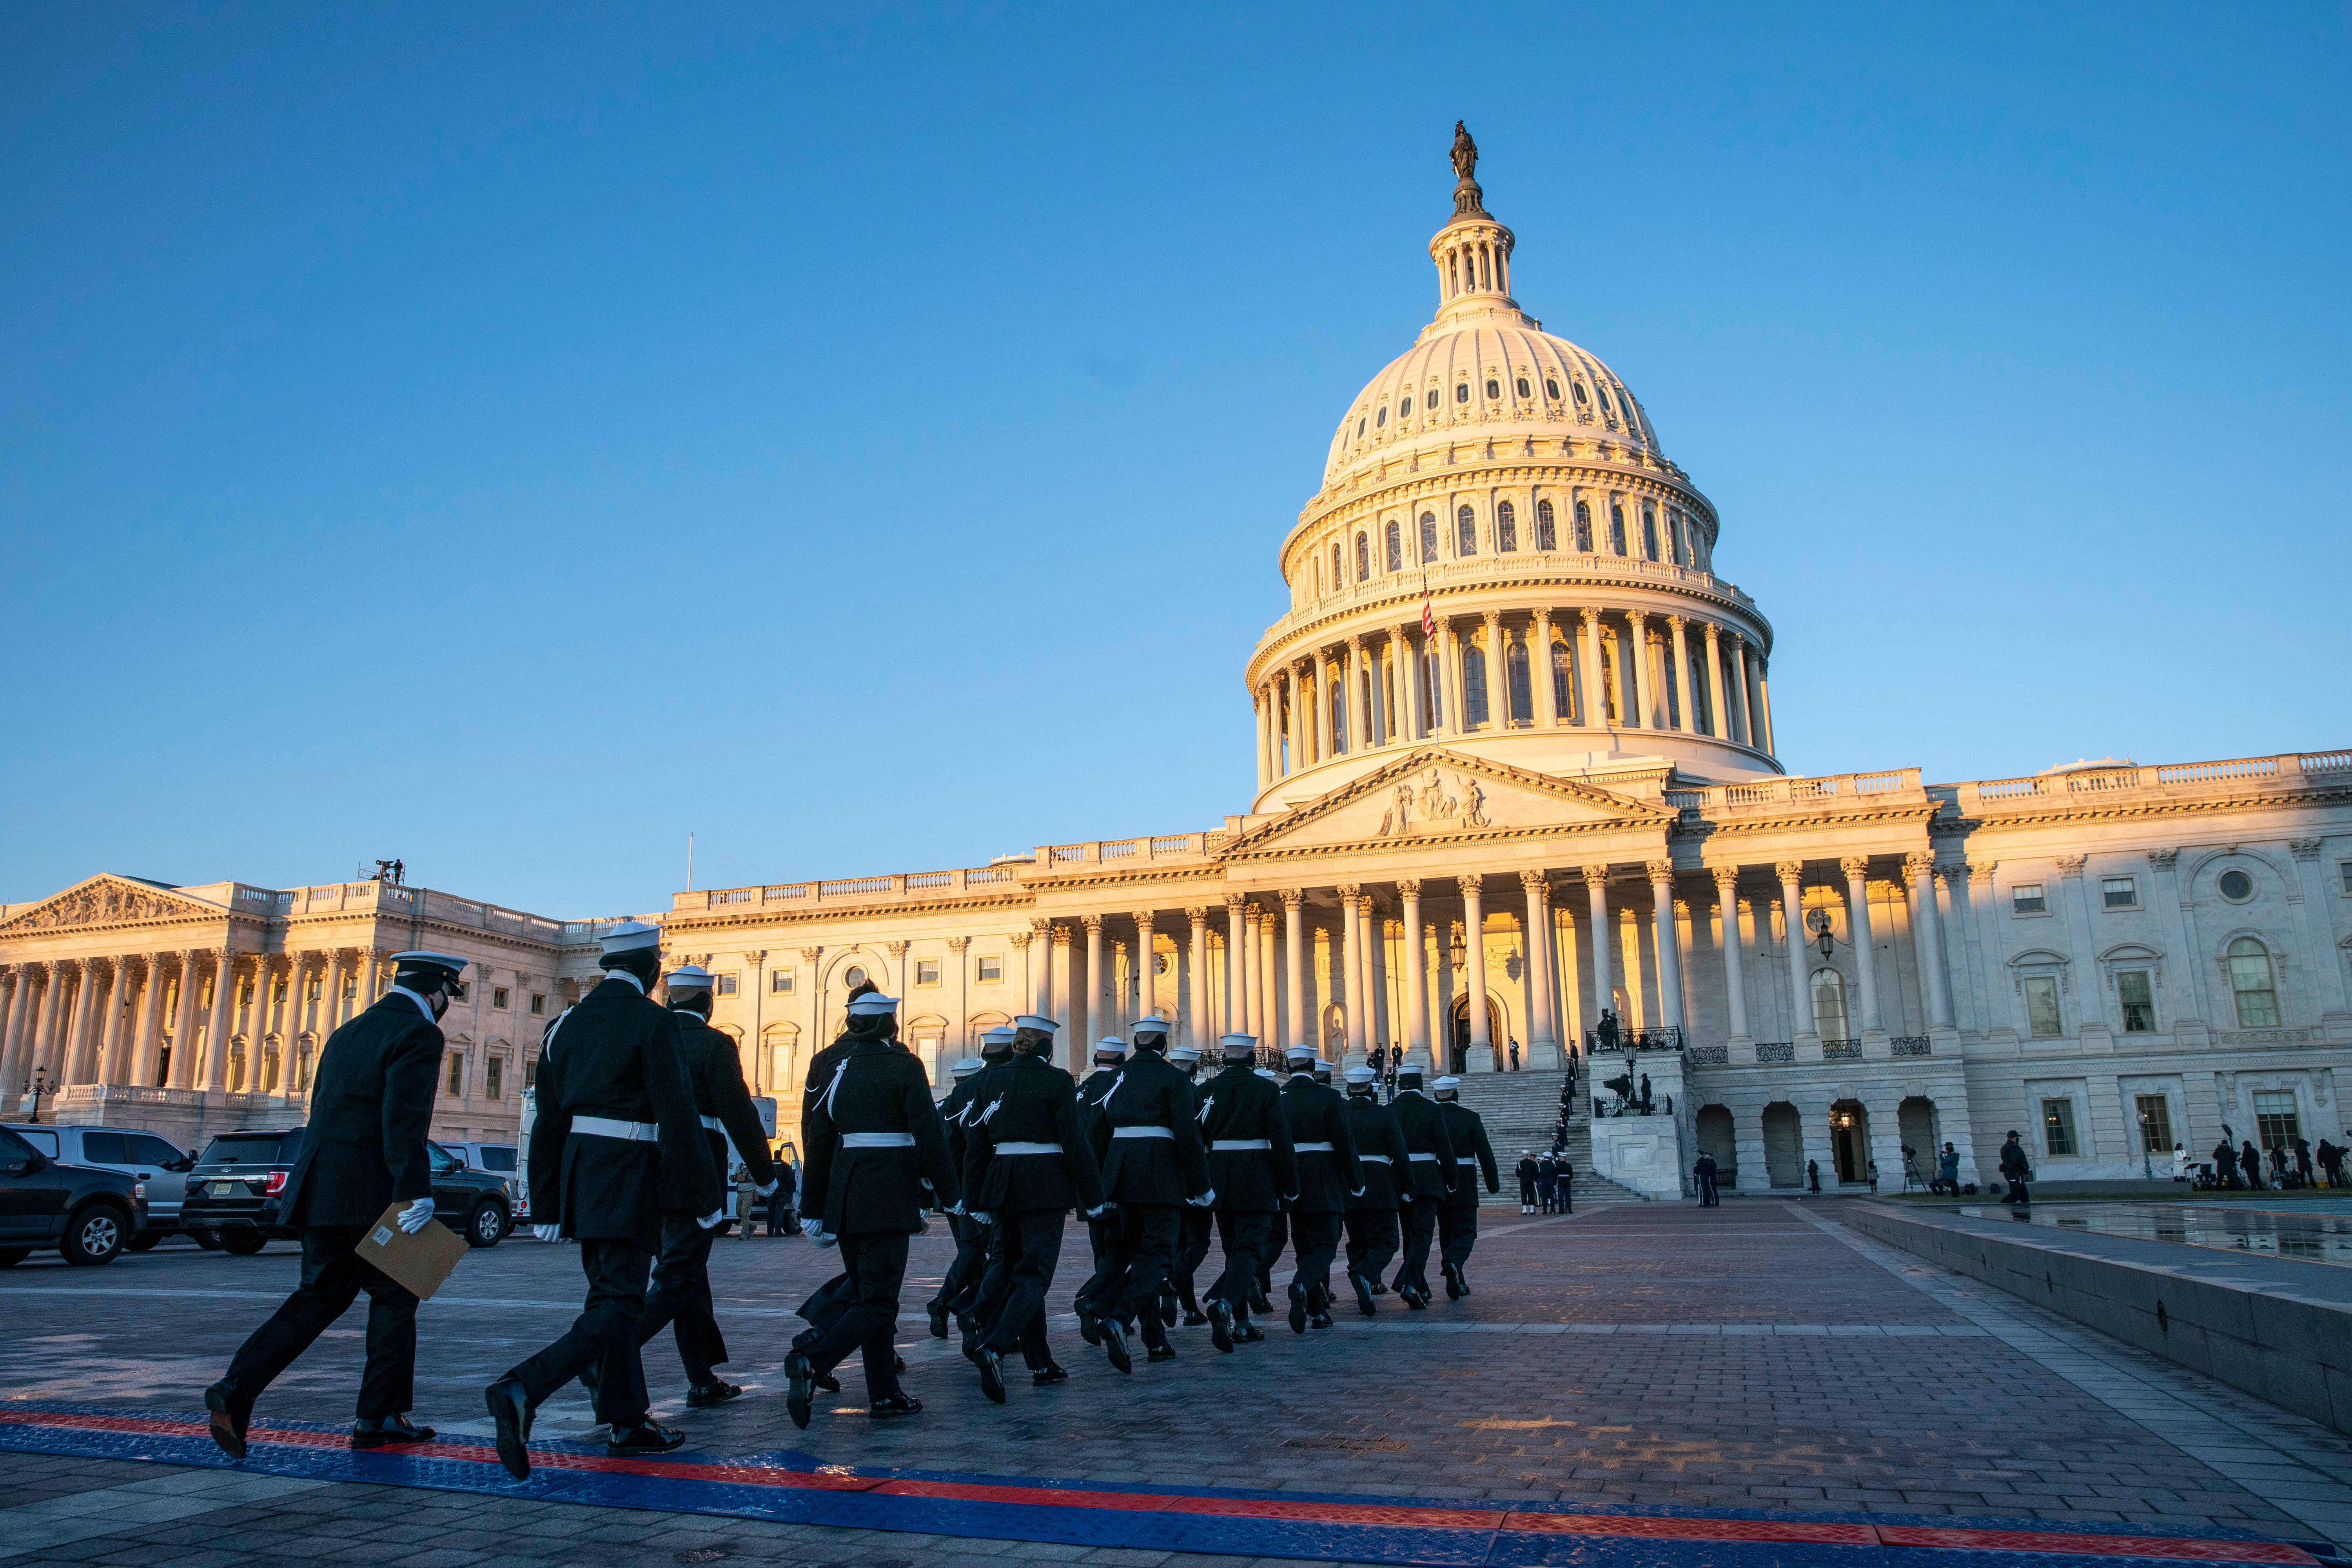 Members of the honor guard practice at sunrise for a presentation at Joe Biden's inauguration in Washington, DC, on January 20.